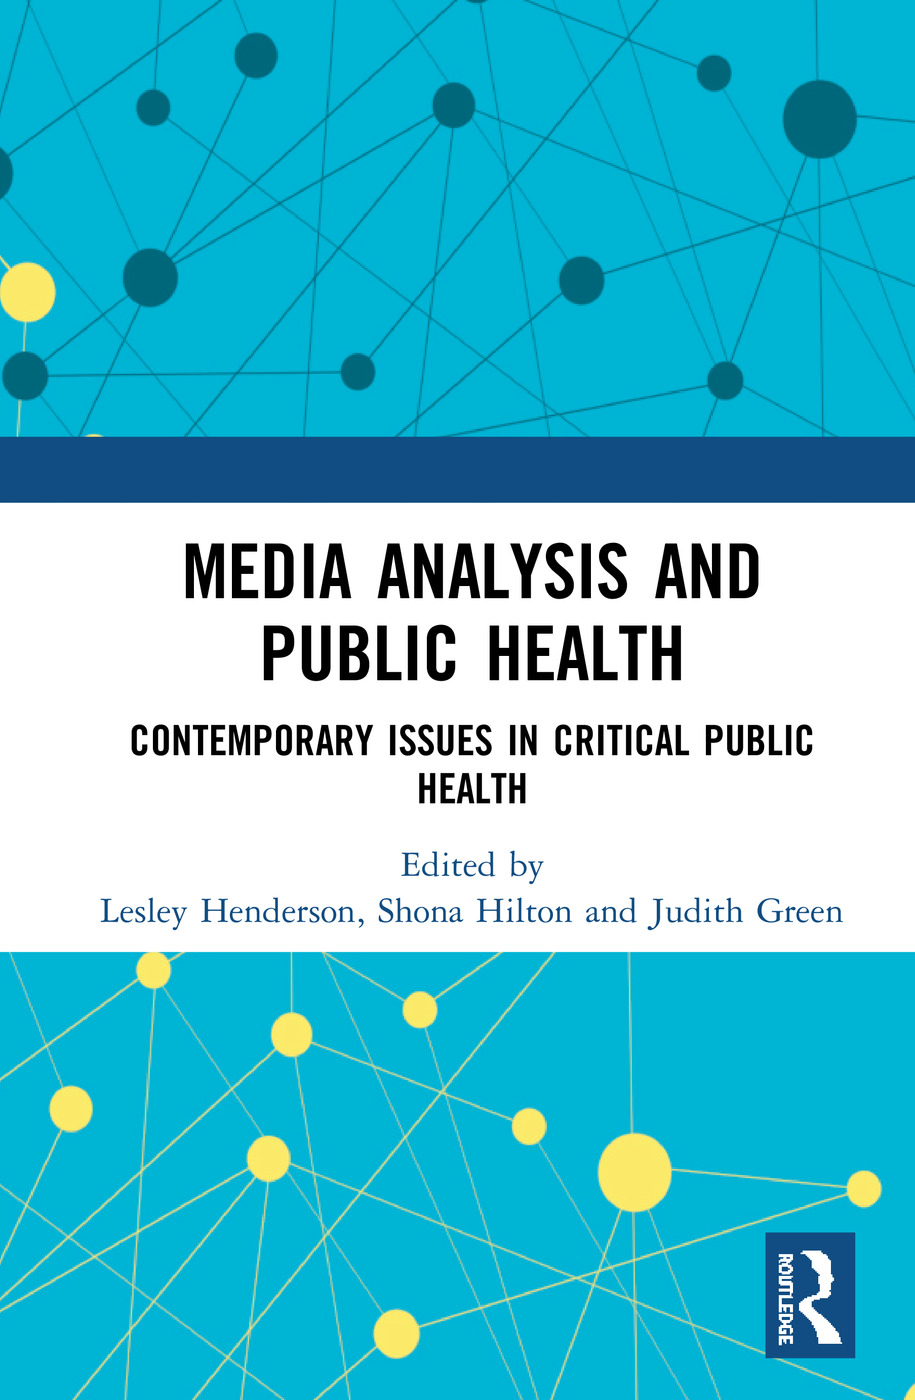 Media Analysis and Public Health: Contemporary Issues in Critical Public Health book cover